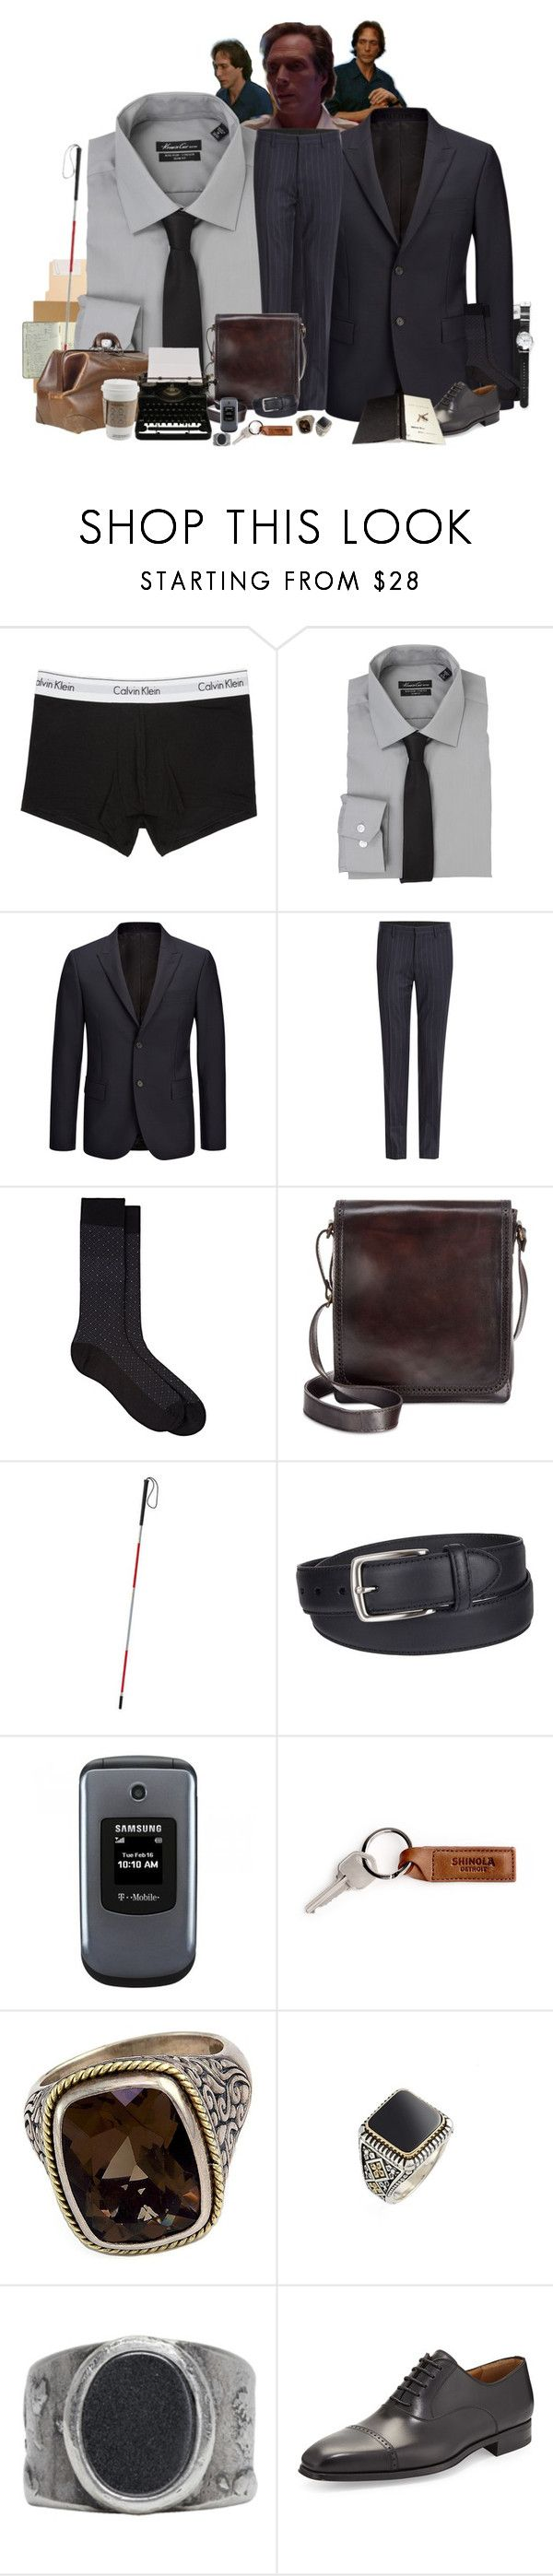 """""""[VISUAL] { why did you come to me first? }"""" by morningstar1399 ❤ liked on Polyvore featuring Calvin Klein Underwear, Moleskine, Kenneth Cole, Joseph, Etro, Barneys New York, Patricia Nash, Columbia, Samsung and Effy Jewelry"""